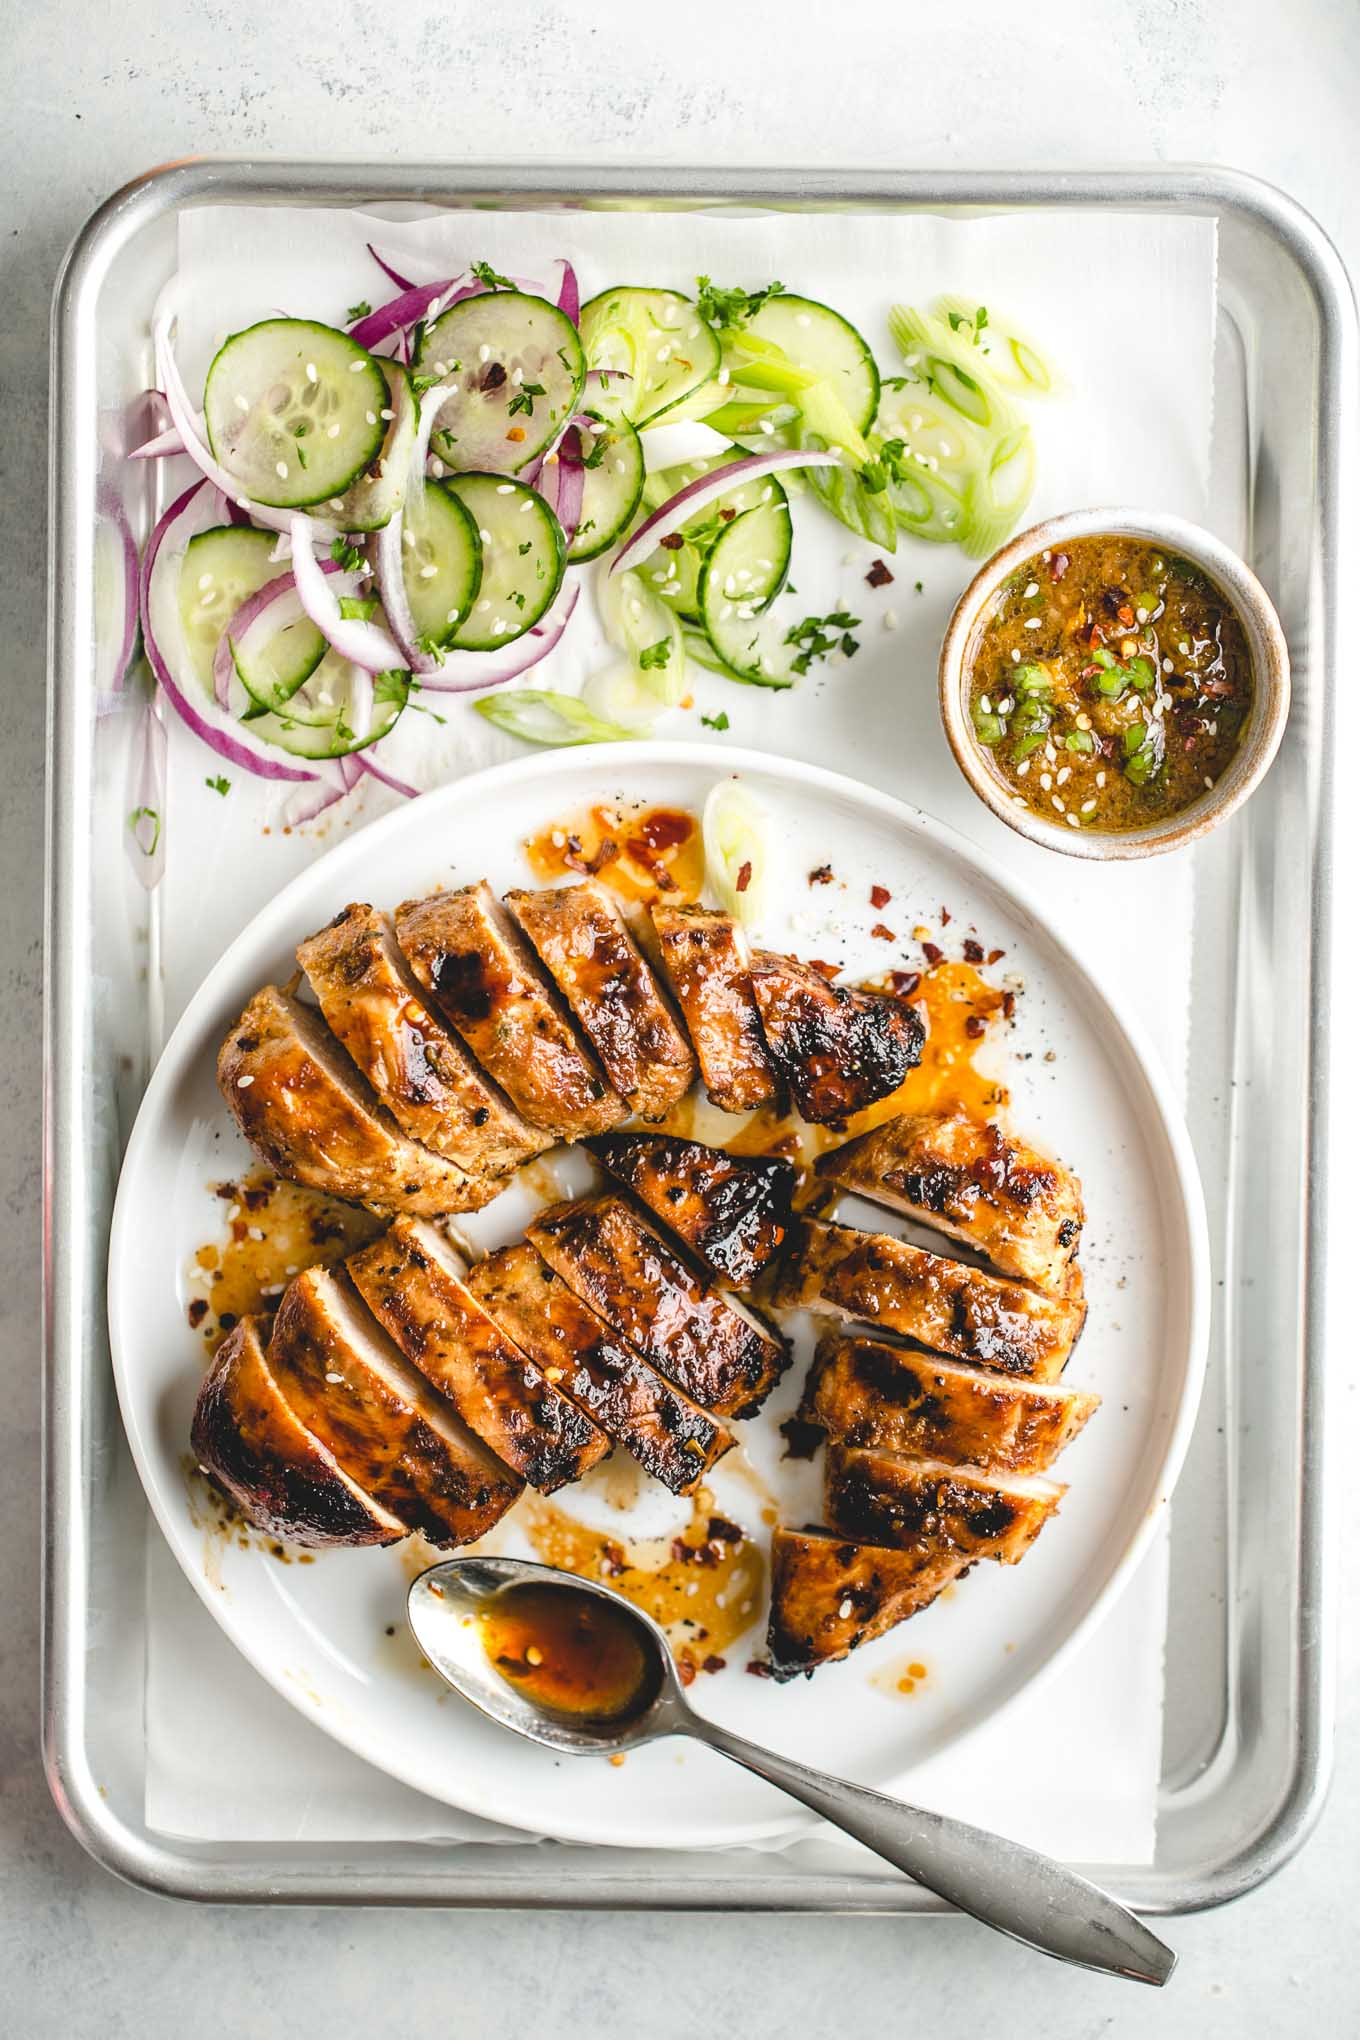 Asian marinade for grilled chicken